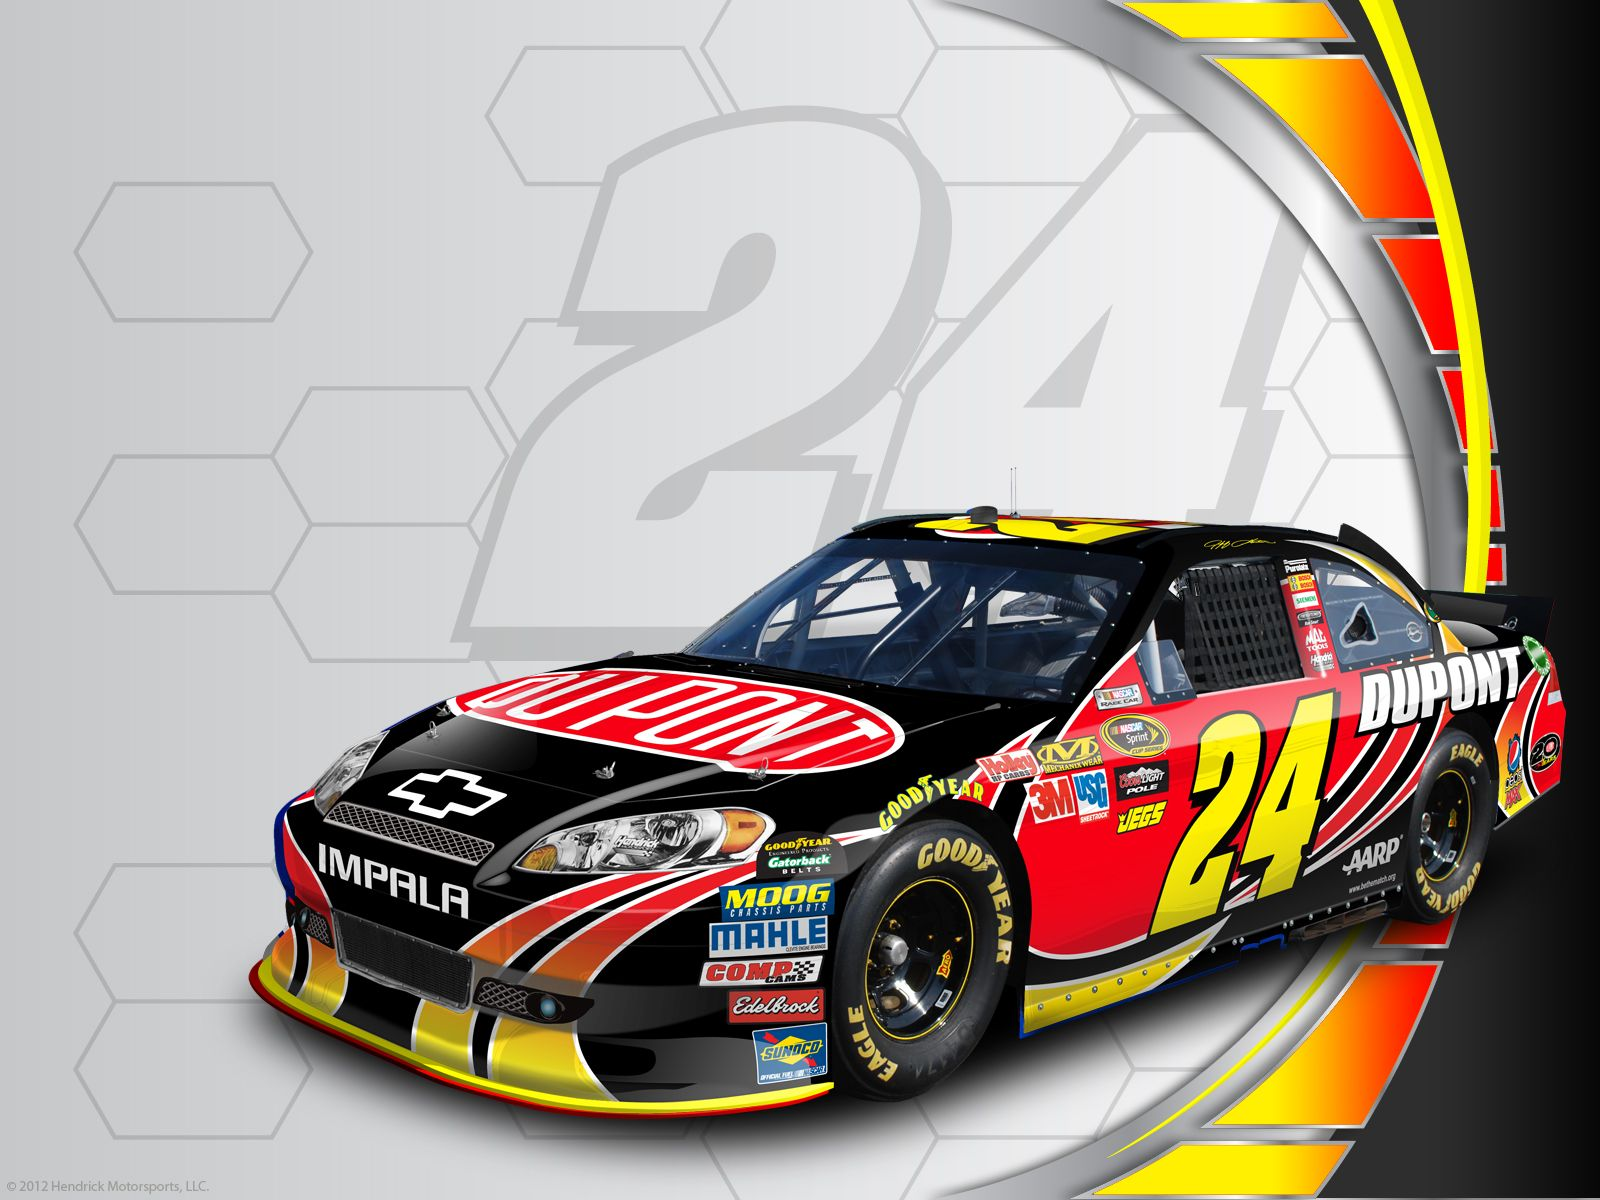 Jeff Gordon S No 24 Dupont Chevrolet Desktop Wallpaper Nascar Racing Nascar Race Cars Nascar 24